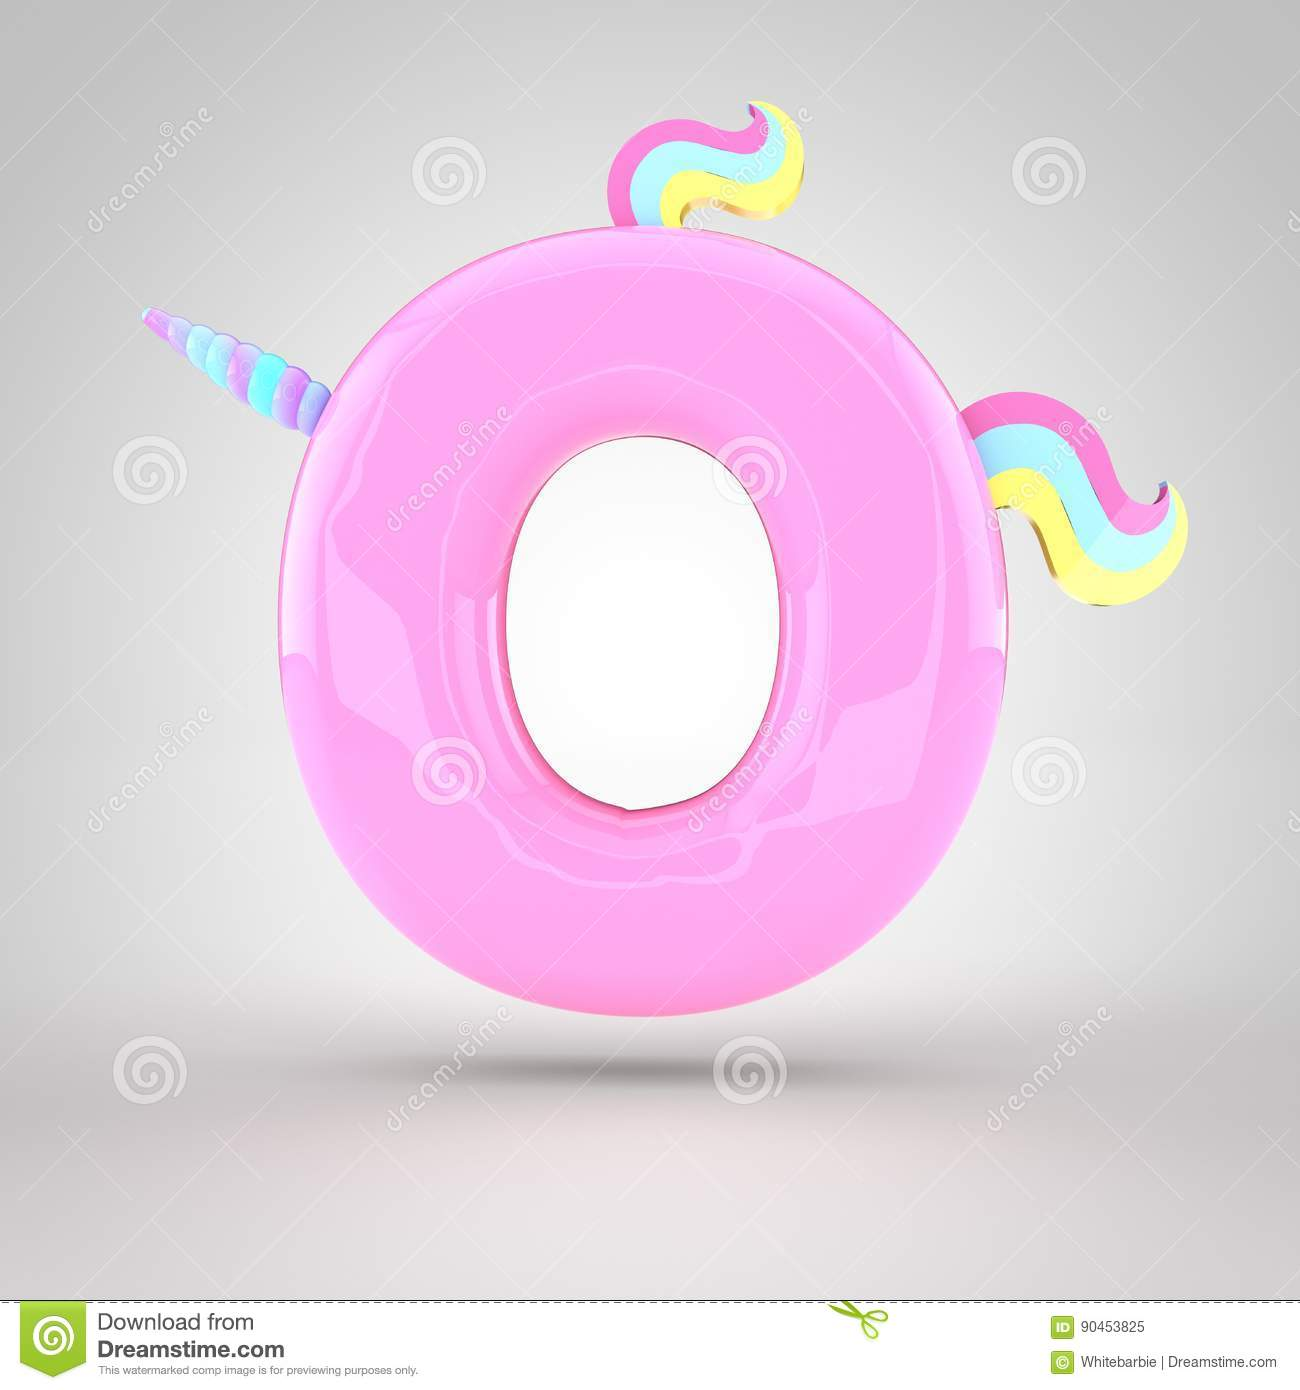 Cute Unicorn Pink Letter O Uppercase Stock Illustration